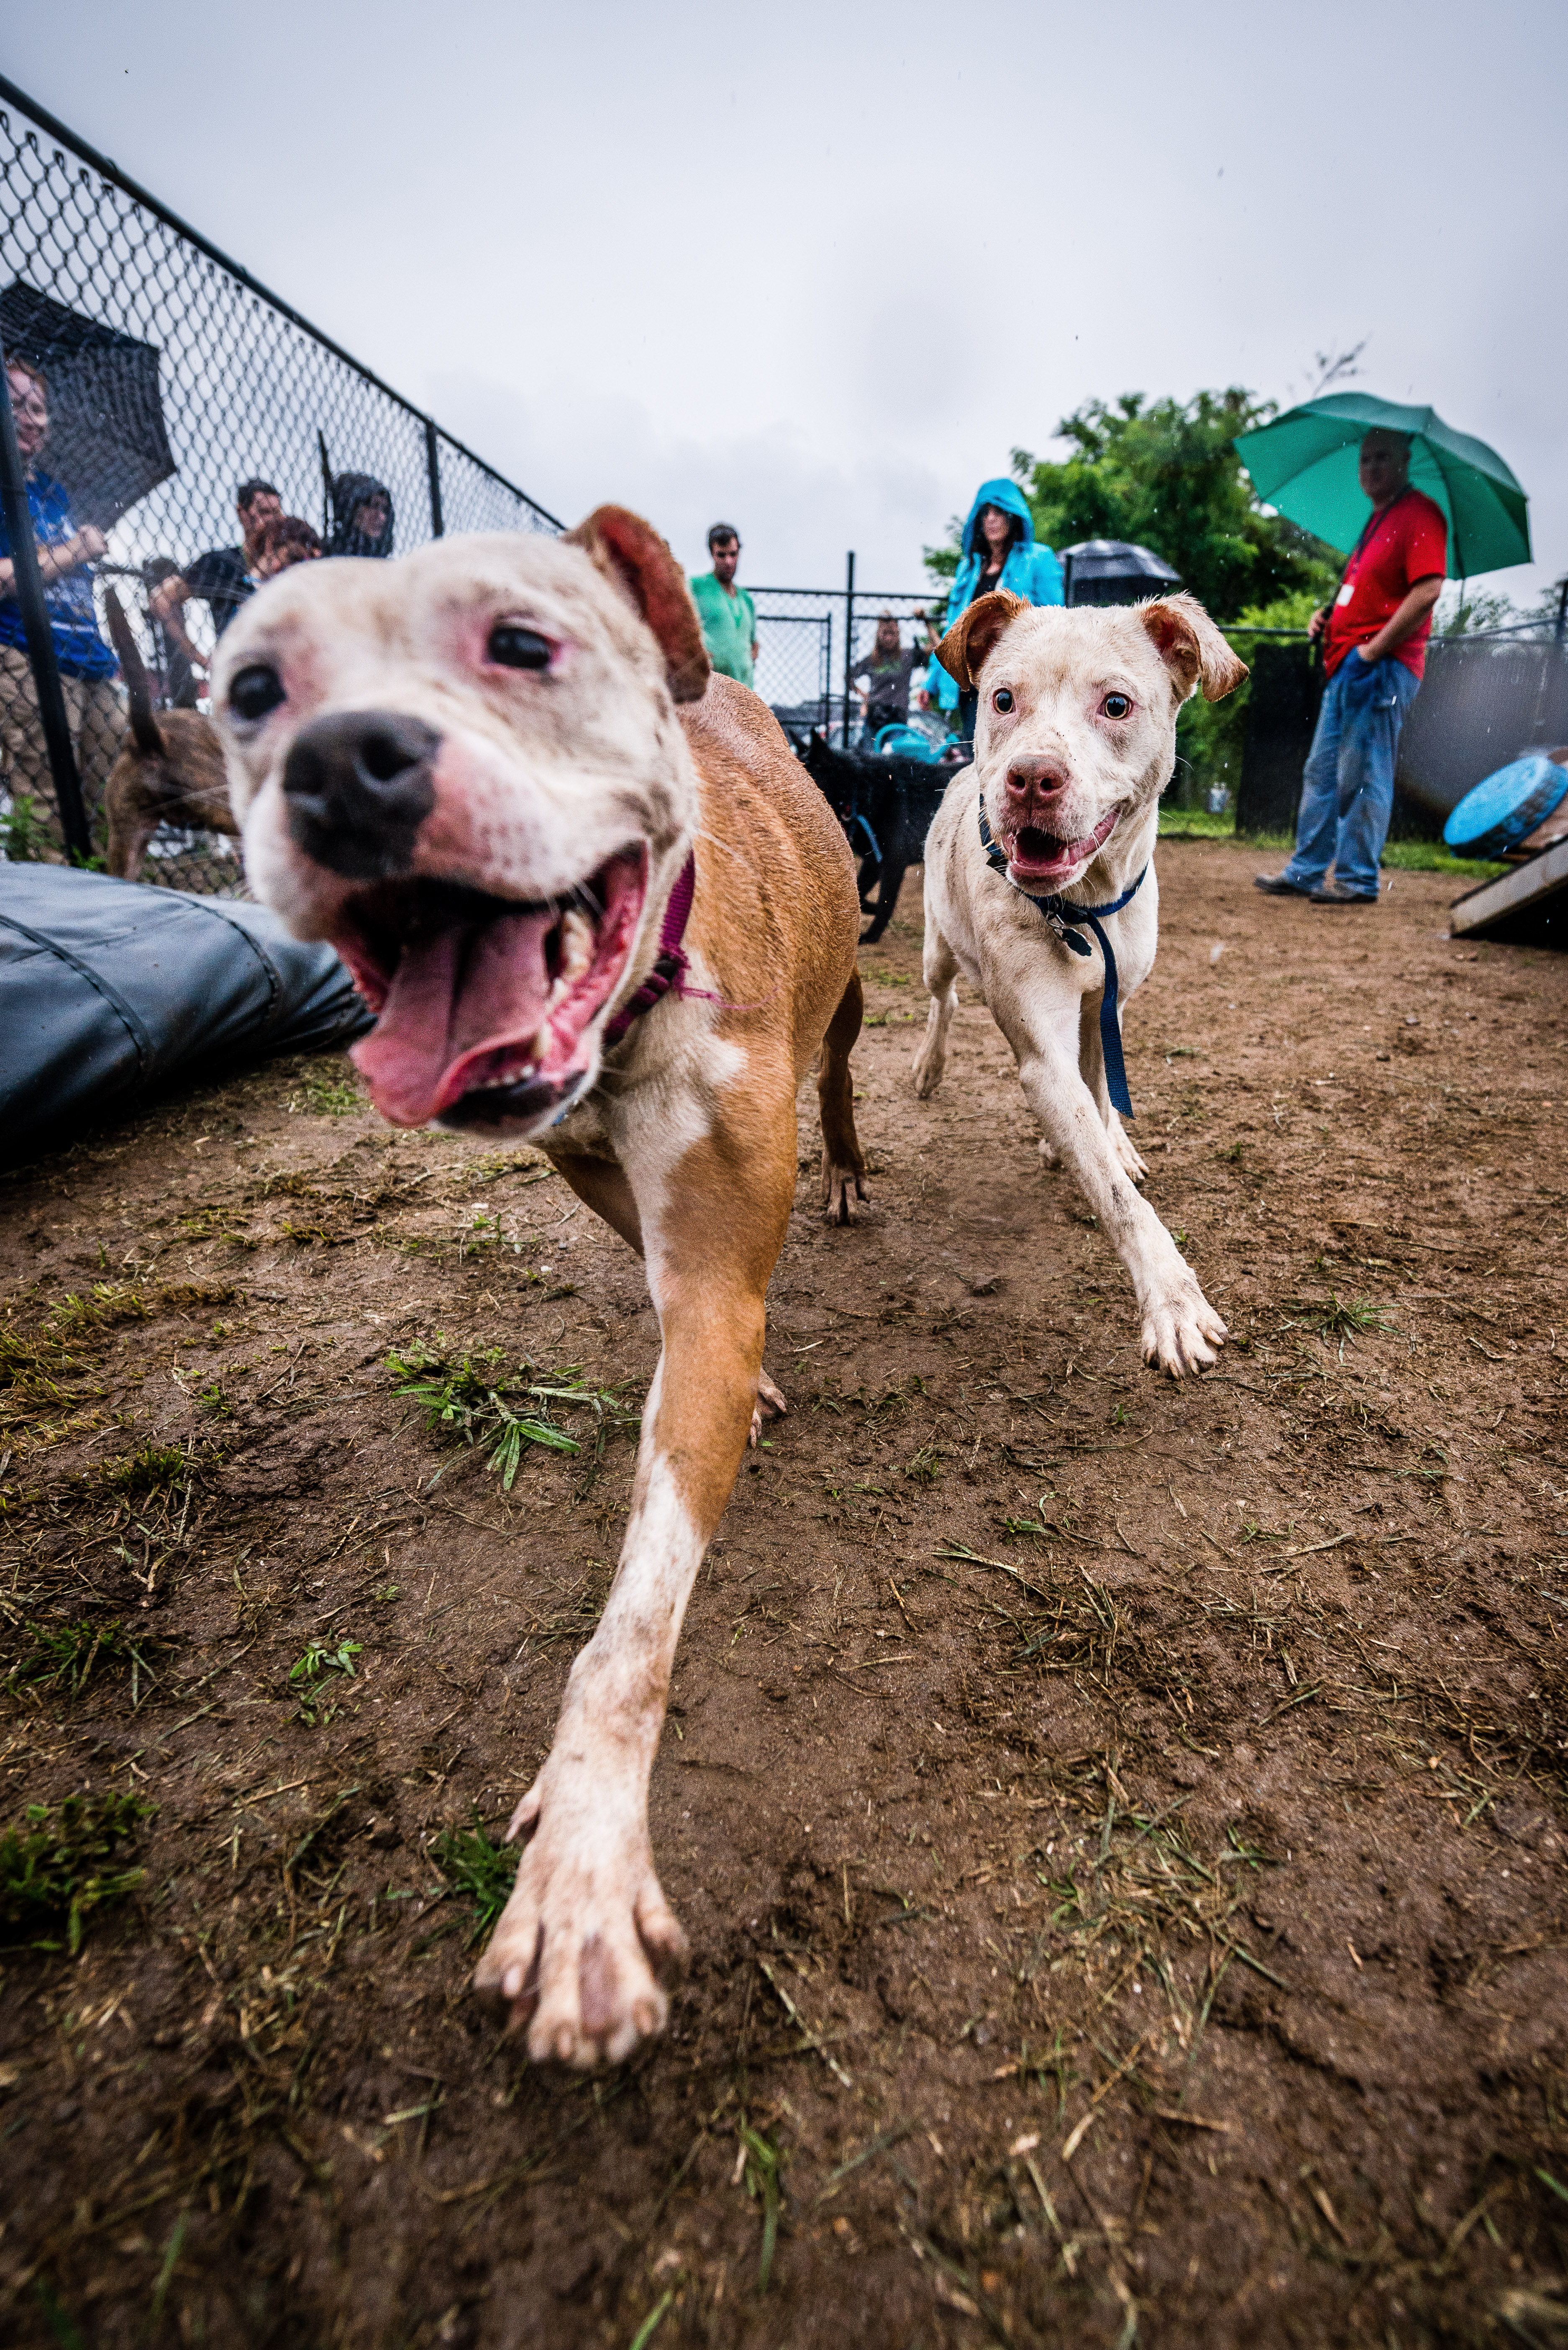 A pair of dogs from a selection day for a prison dog program. Image credit below.